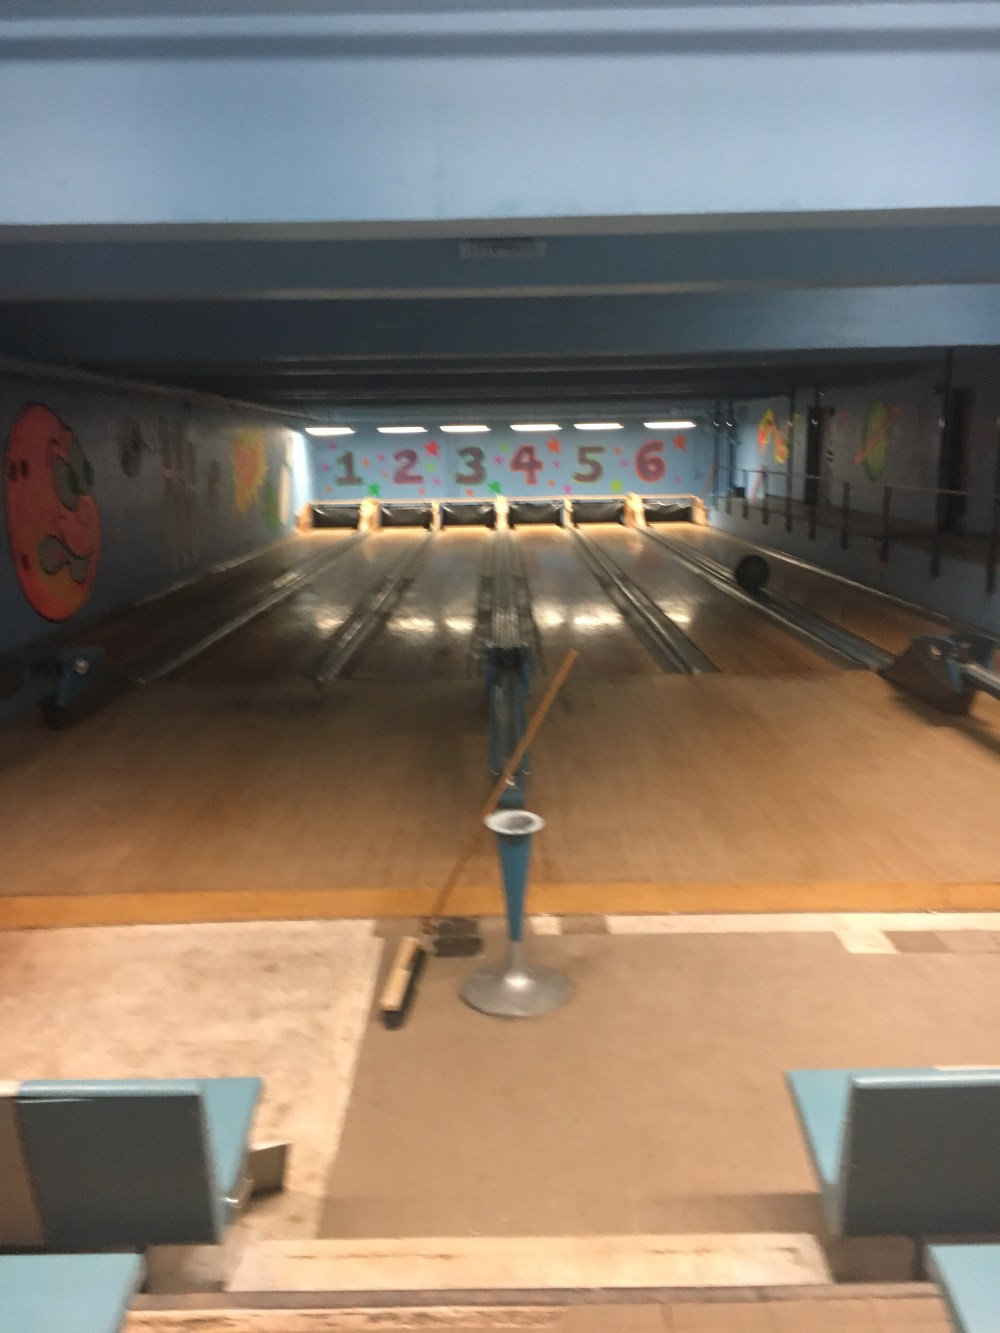 Abandoned Bowling Alley Near Me : abandoned, bowling, alley, Abandoned?, Urban, Exploration, Dummies